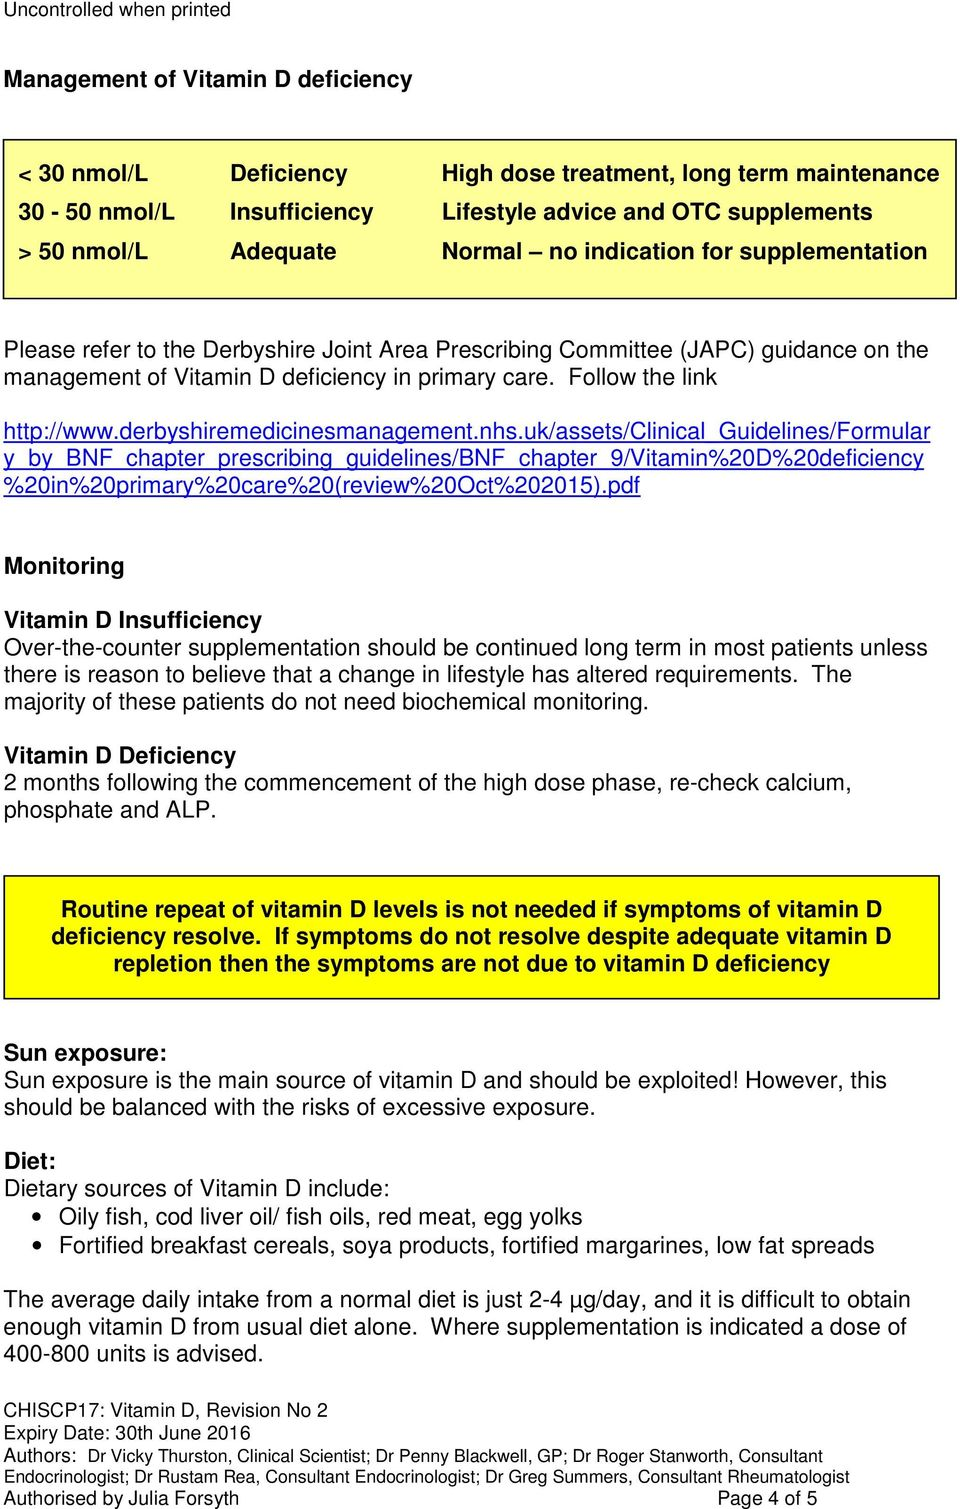 derbyshiremedicinesmanagement.nhs.uk/assets/clinical_guidelines/formular y_by_bnf_chapter_prescribing_guidelines/bnf_chapter_9/vitamin%20d%20deficiency %20in%20primary%20care%20(review%20Oct%202015).